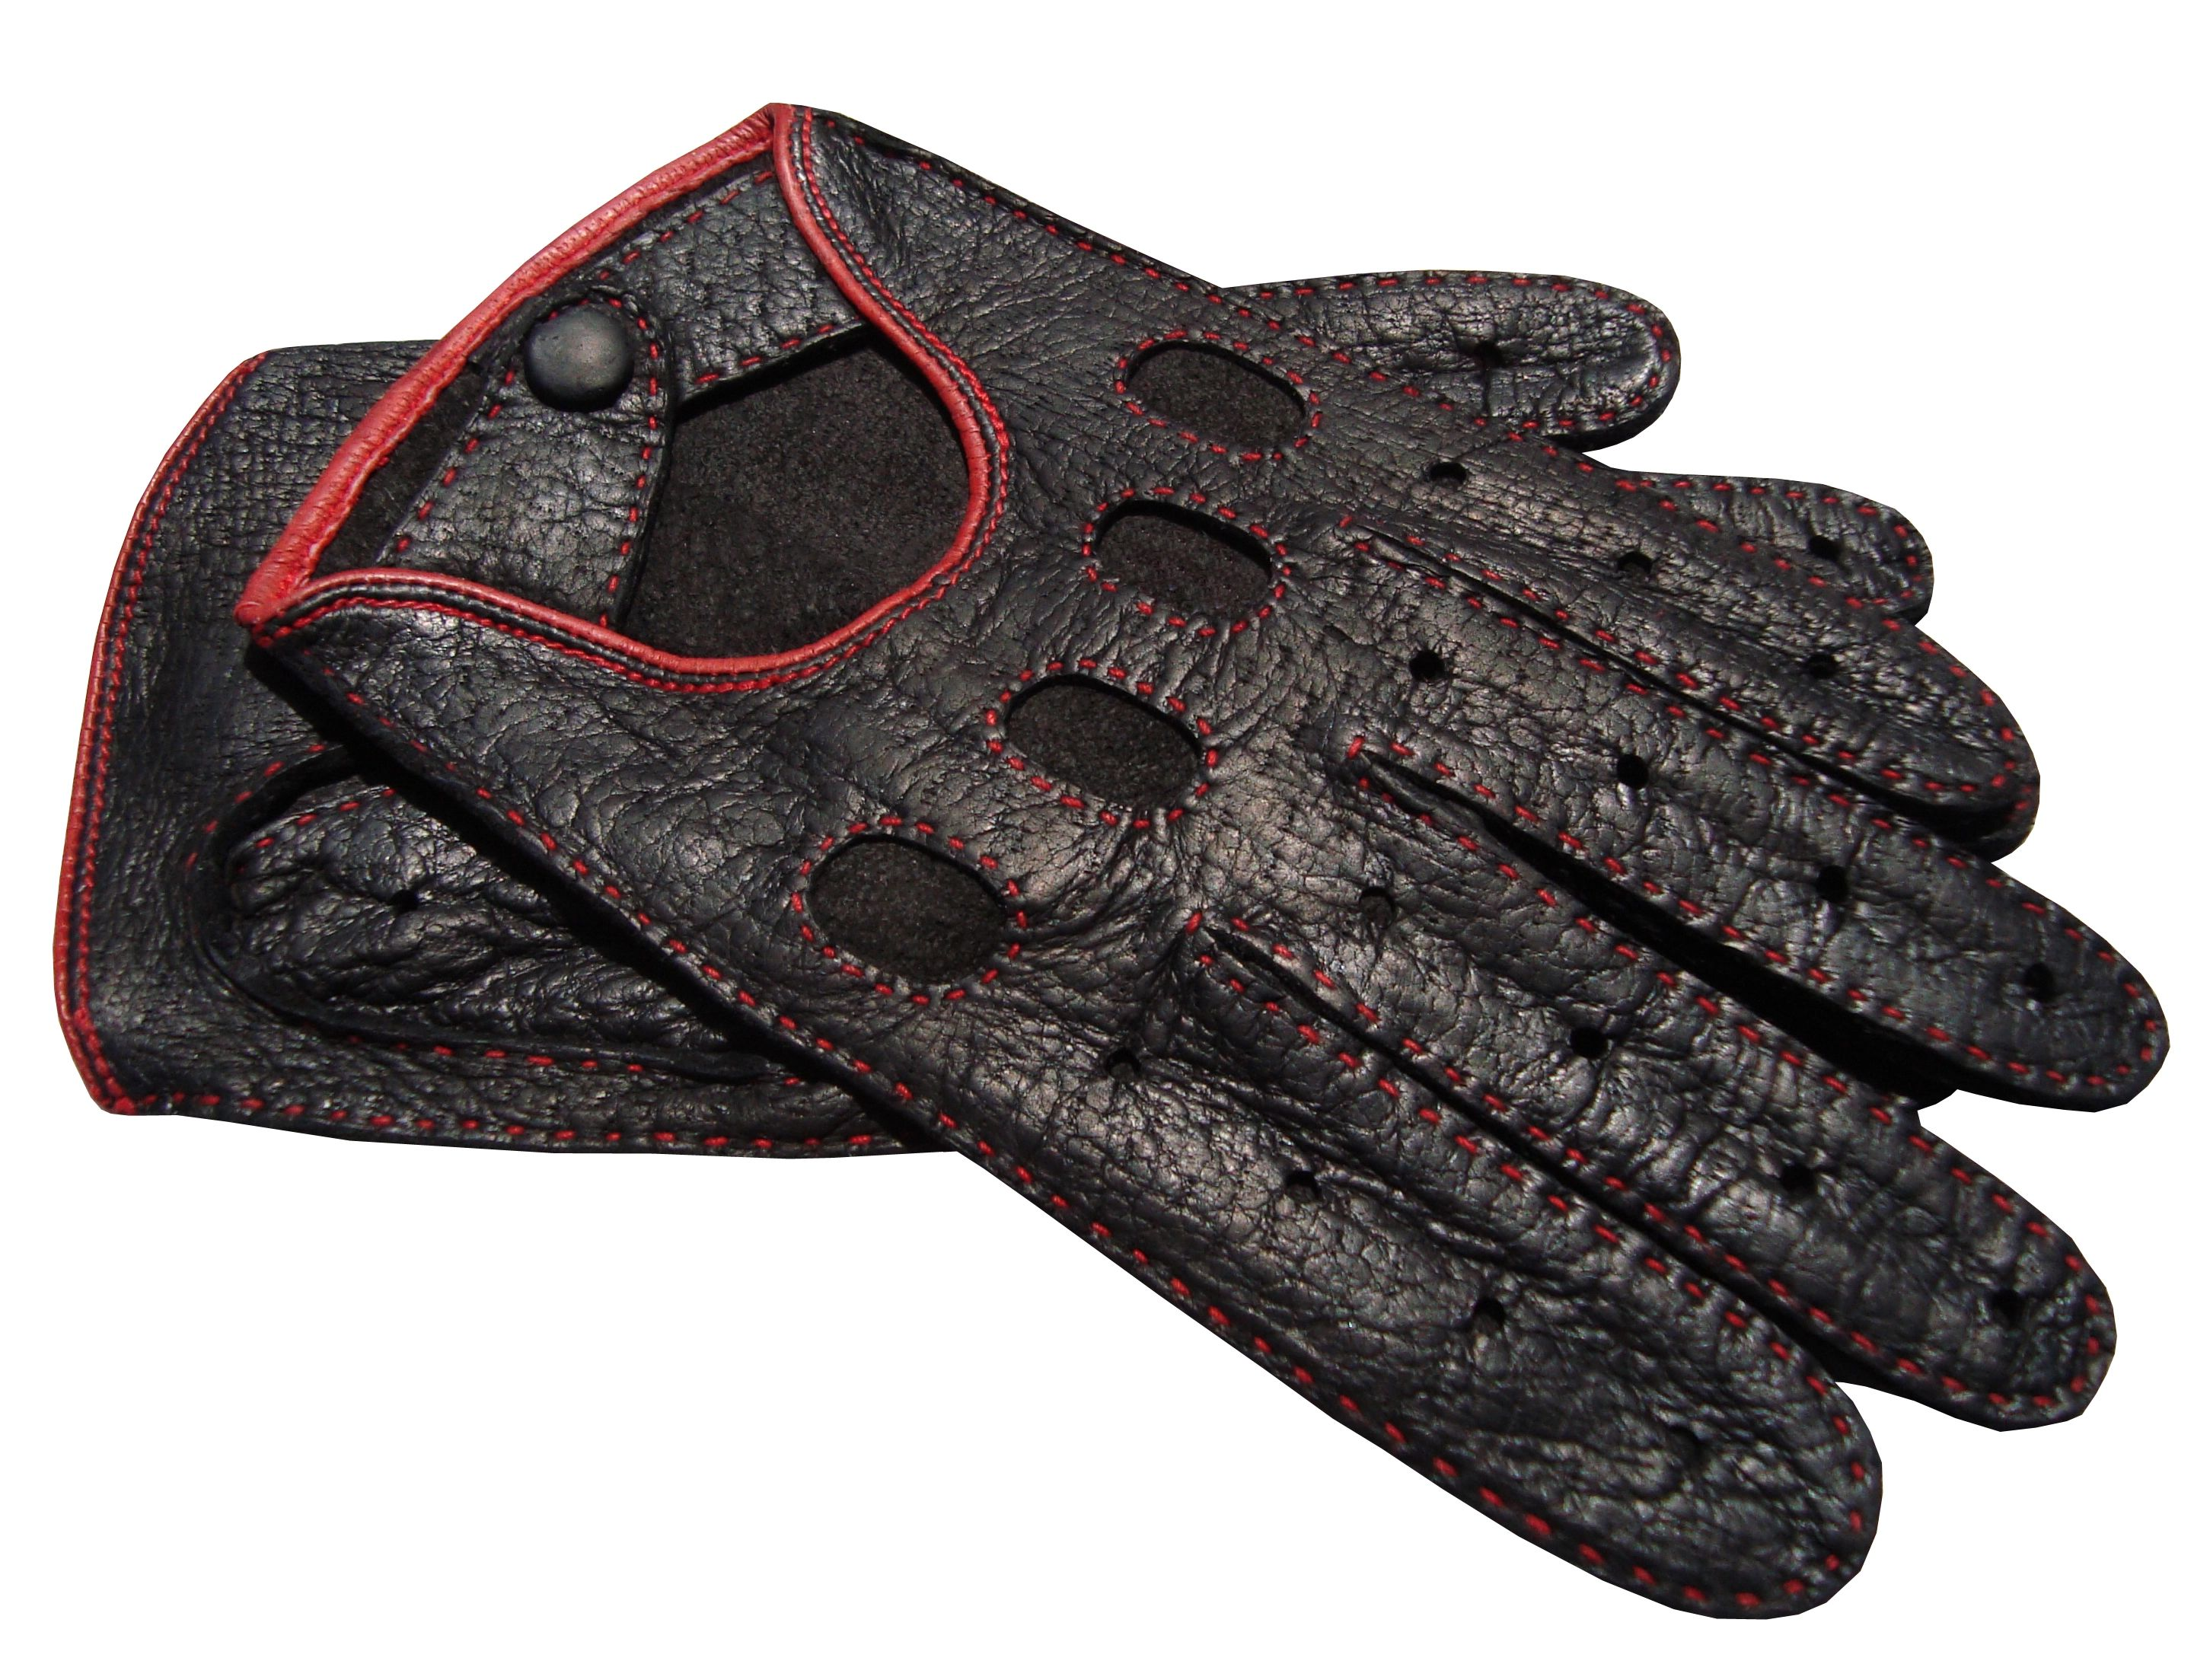 Features for best driving gloves and shoes